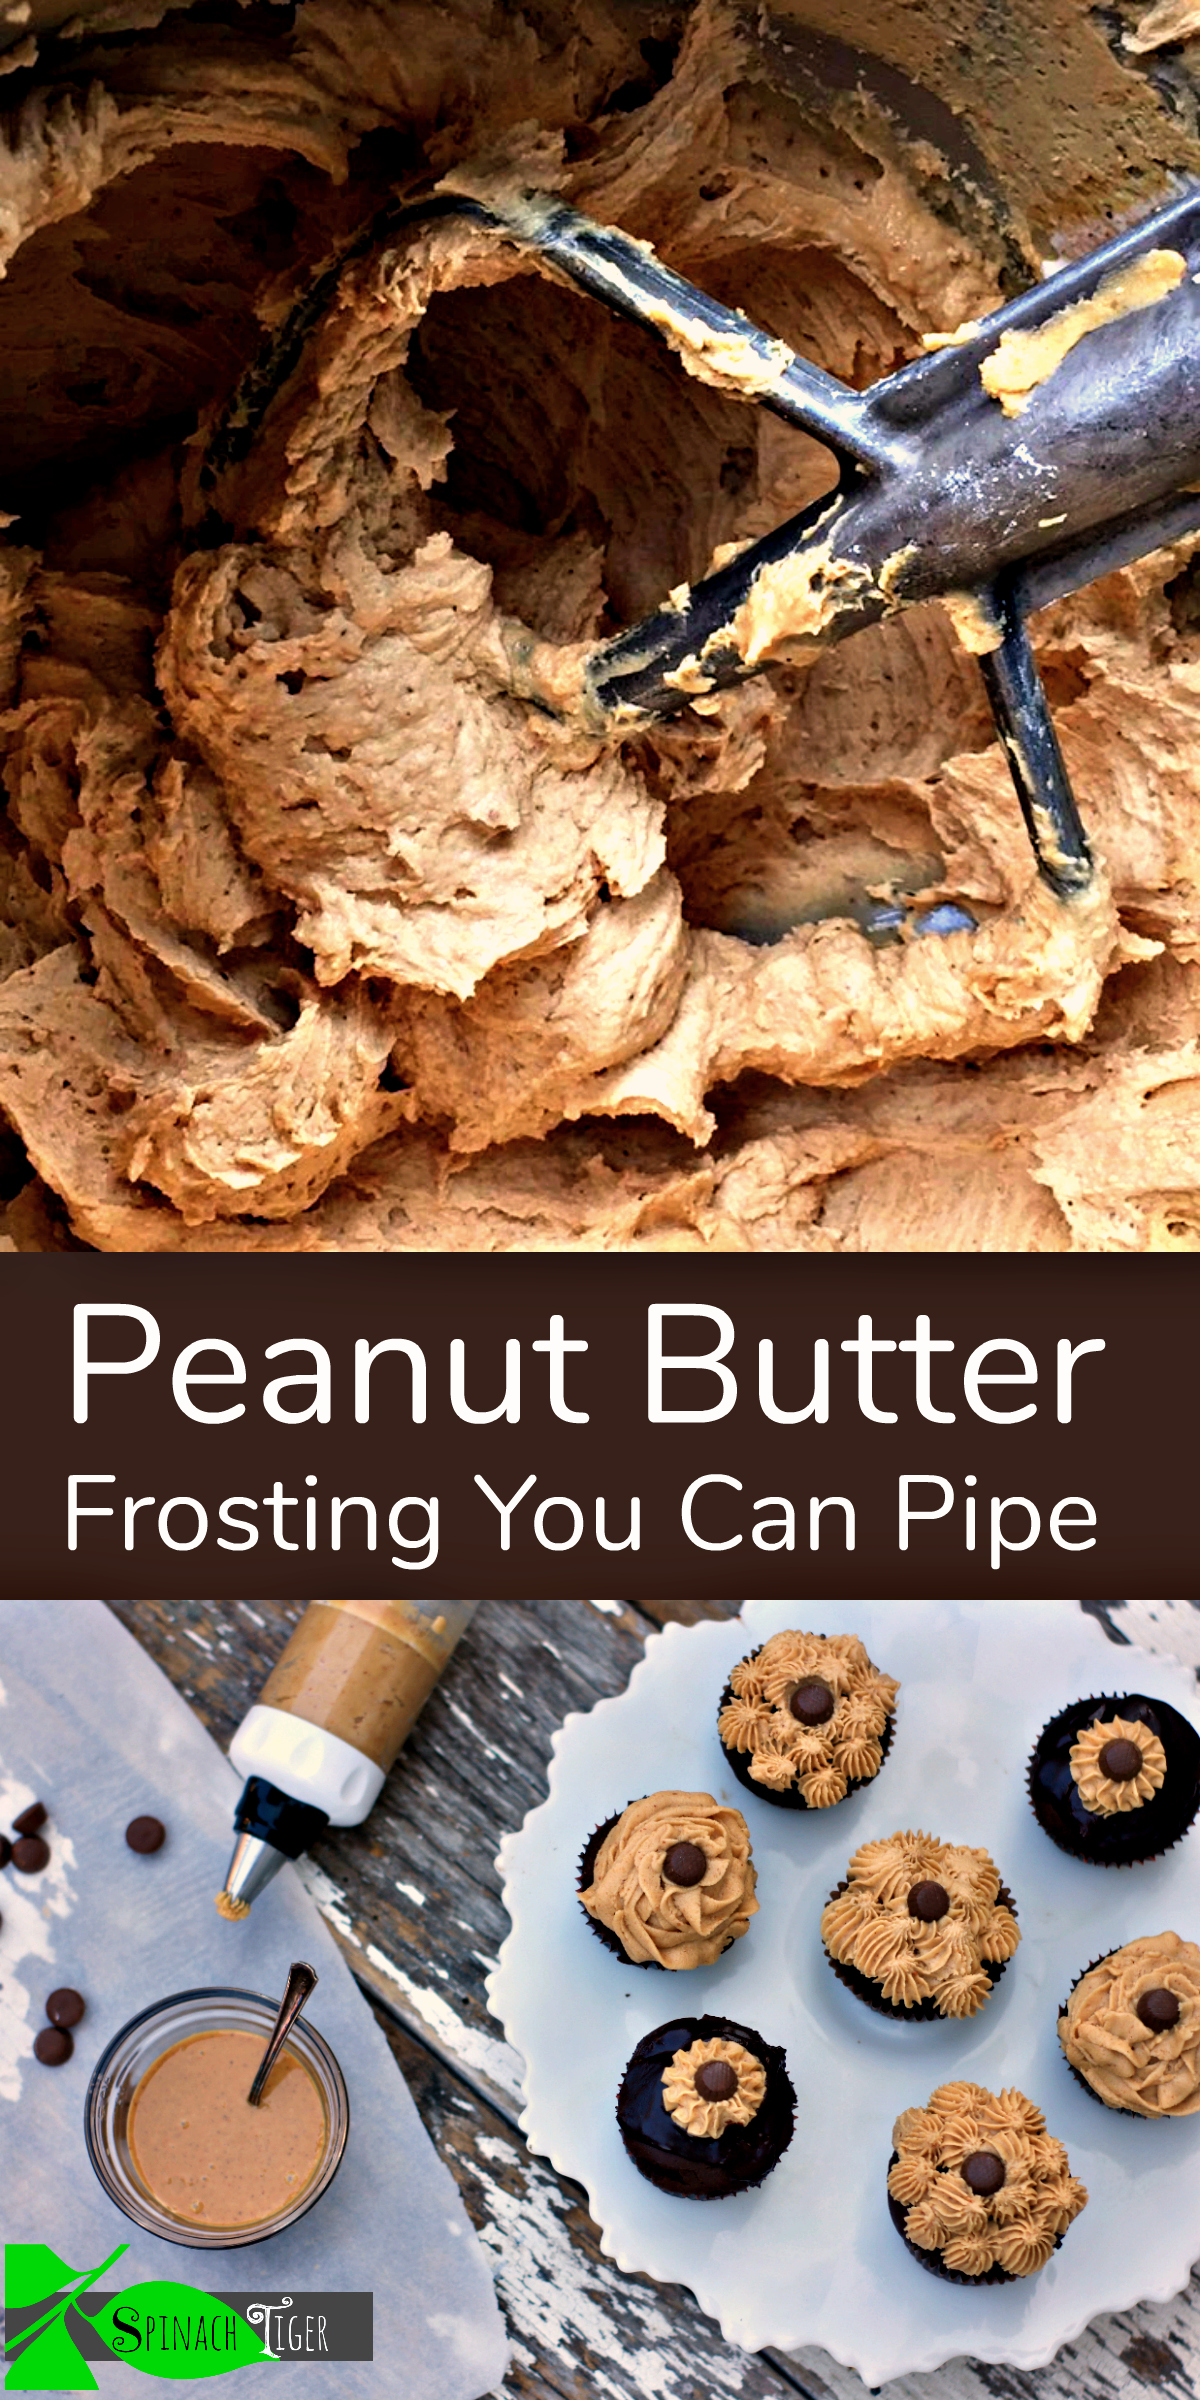 Peanut Butter Frosting Recipes You Can PIpe from Spinach Tiger